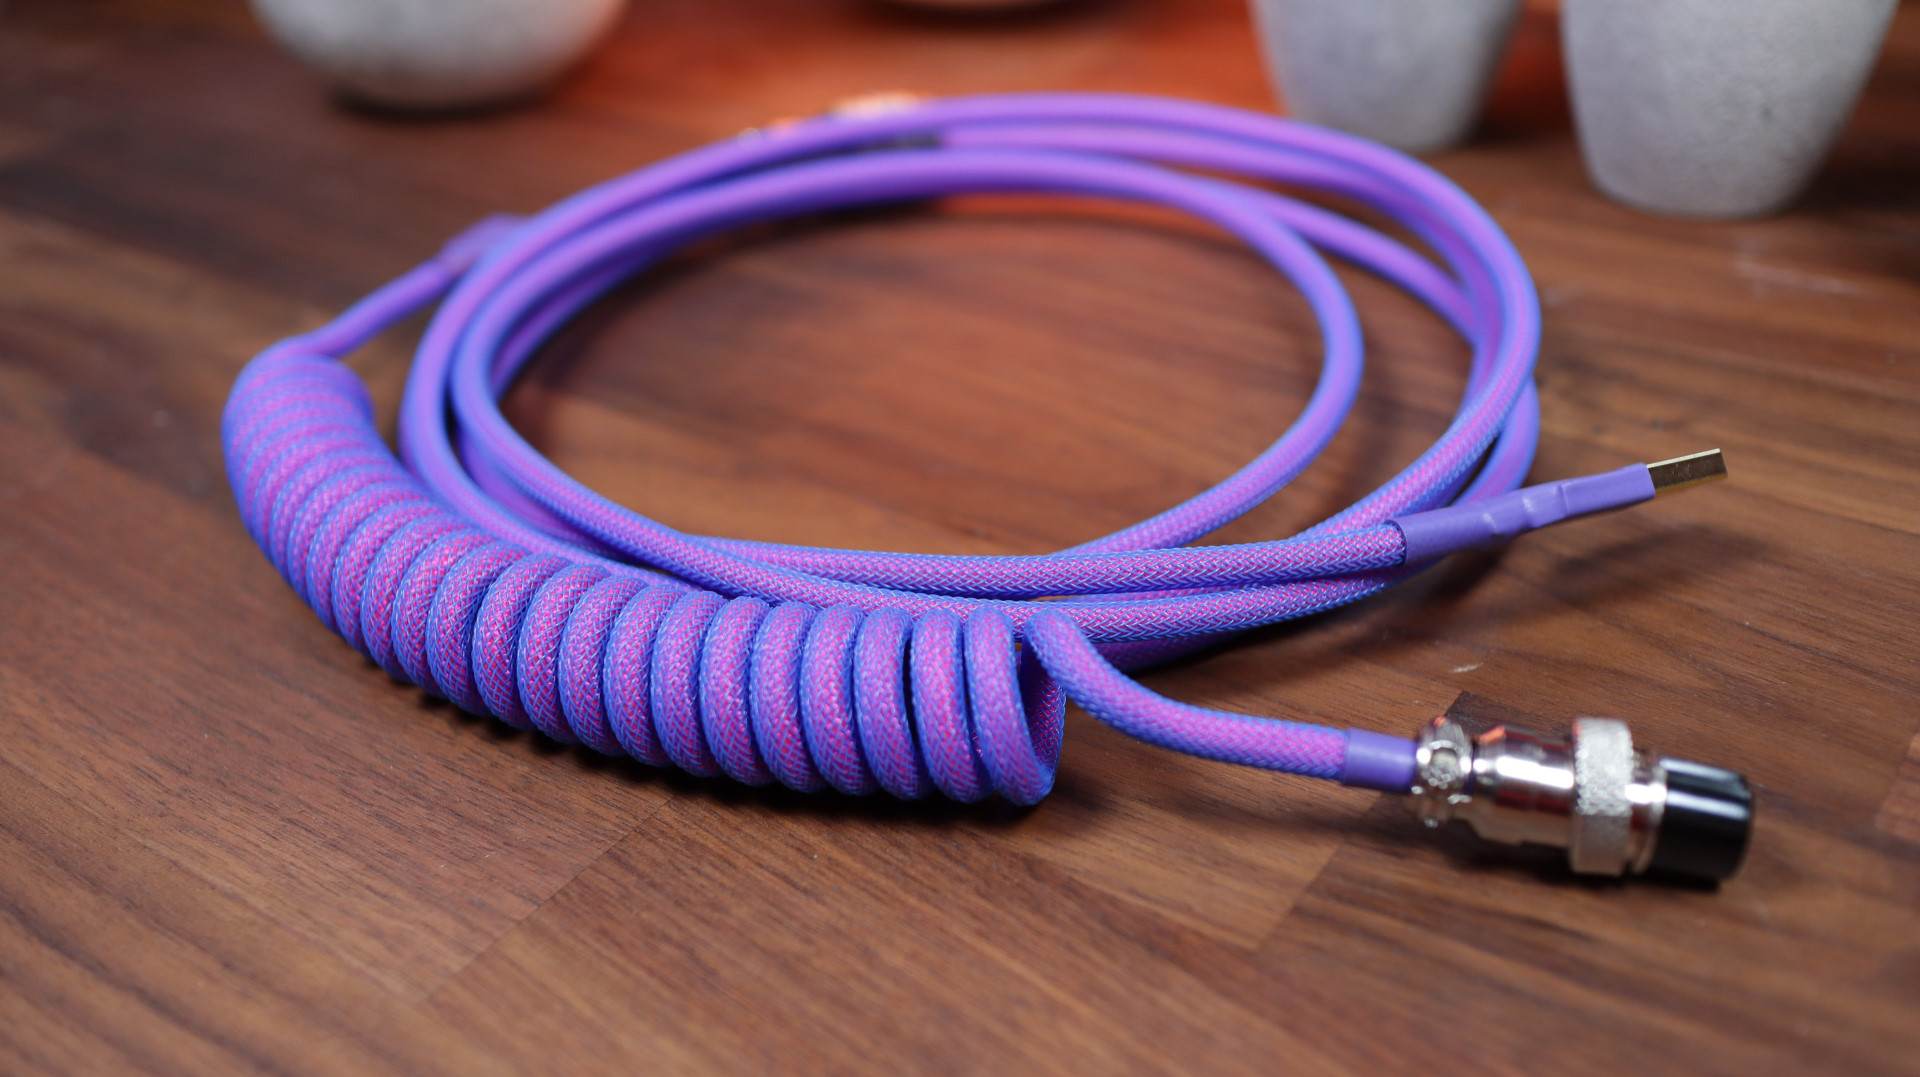 Dream Cables Aviator Keyboard Cable